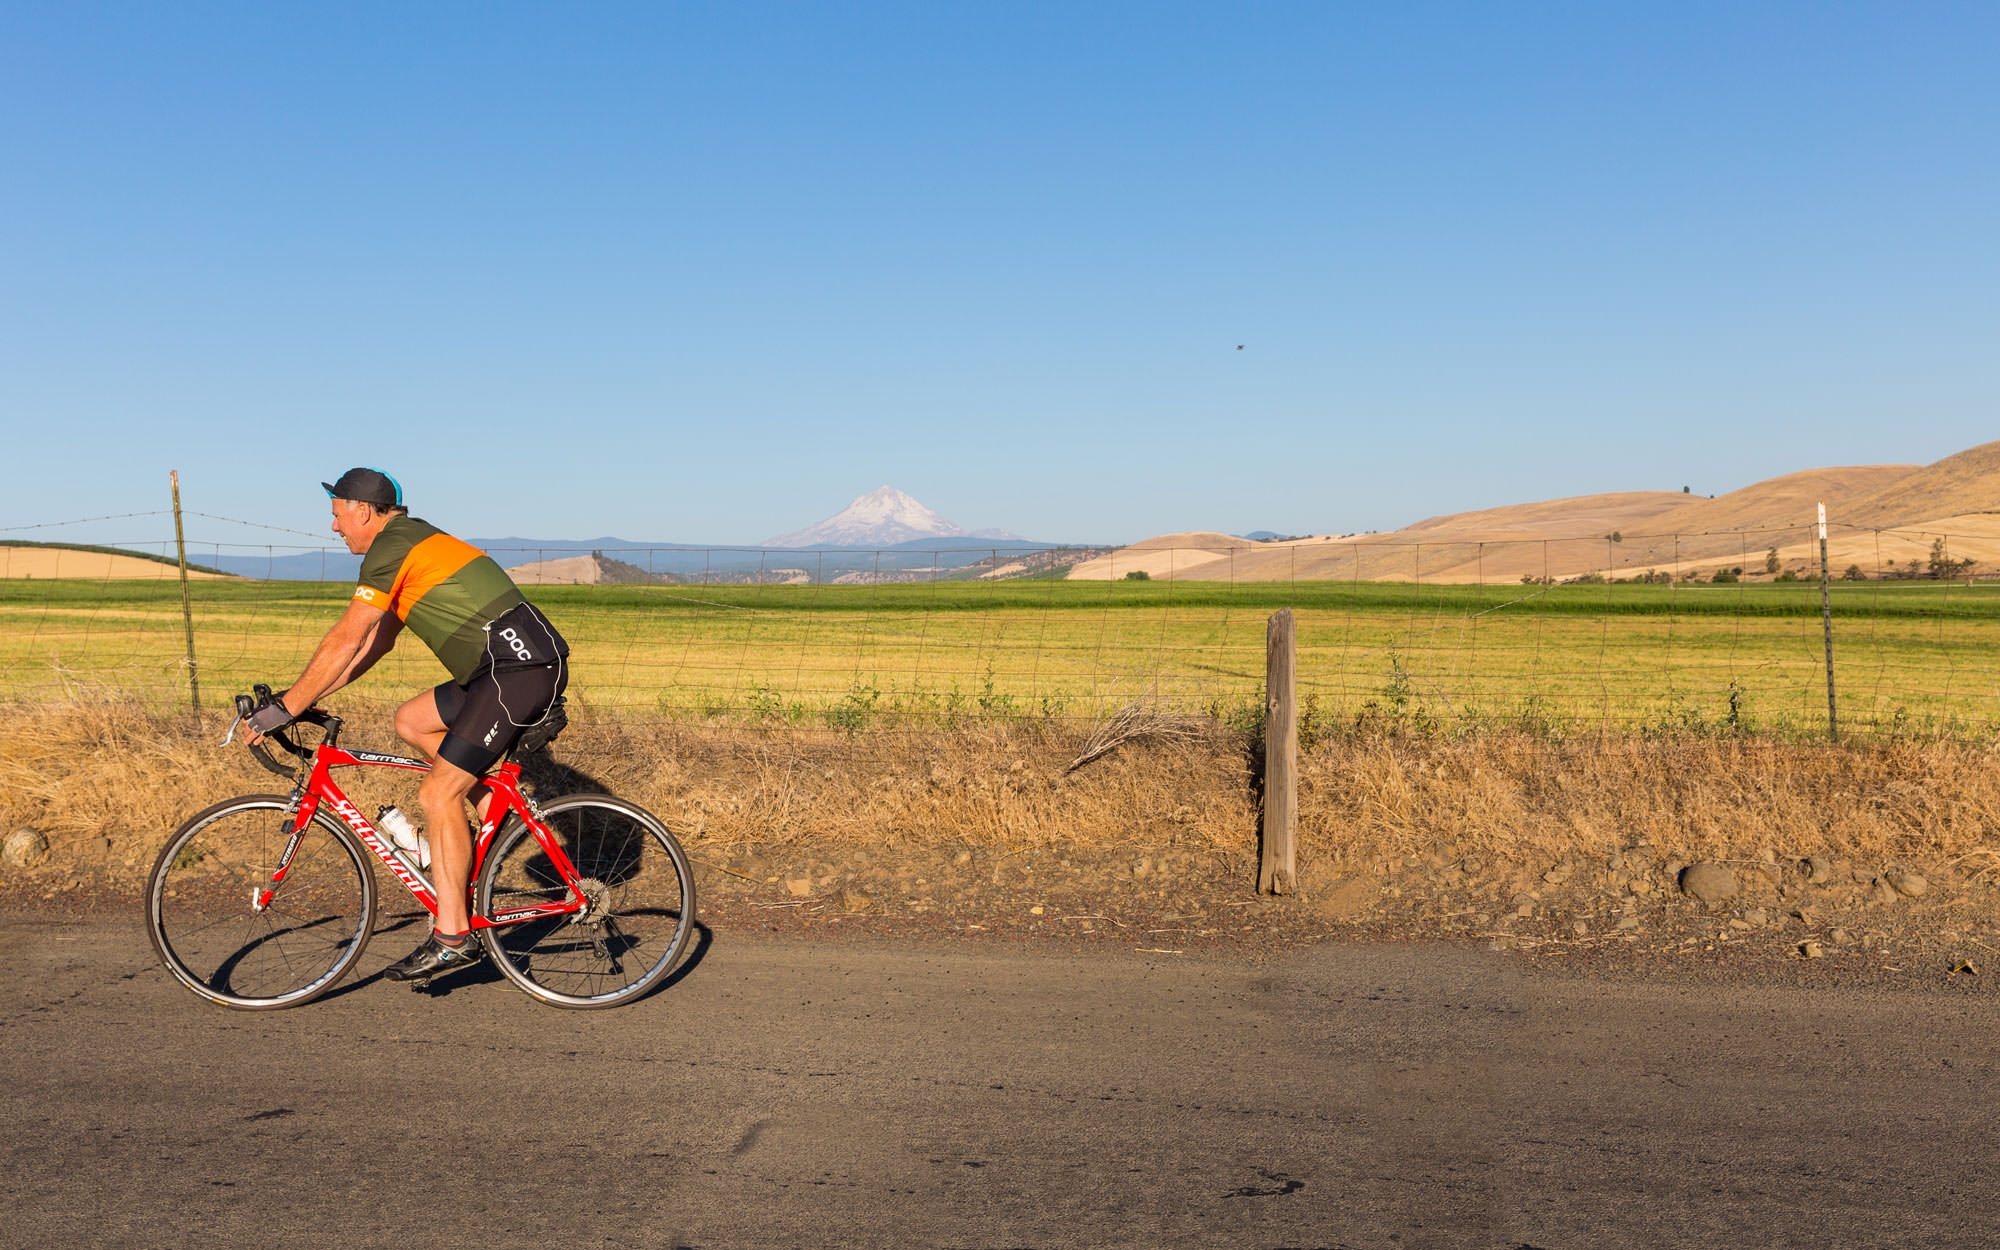 A cyclist pedals on a gravel road with a backdrop of farmland and a snow-capped mountain.